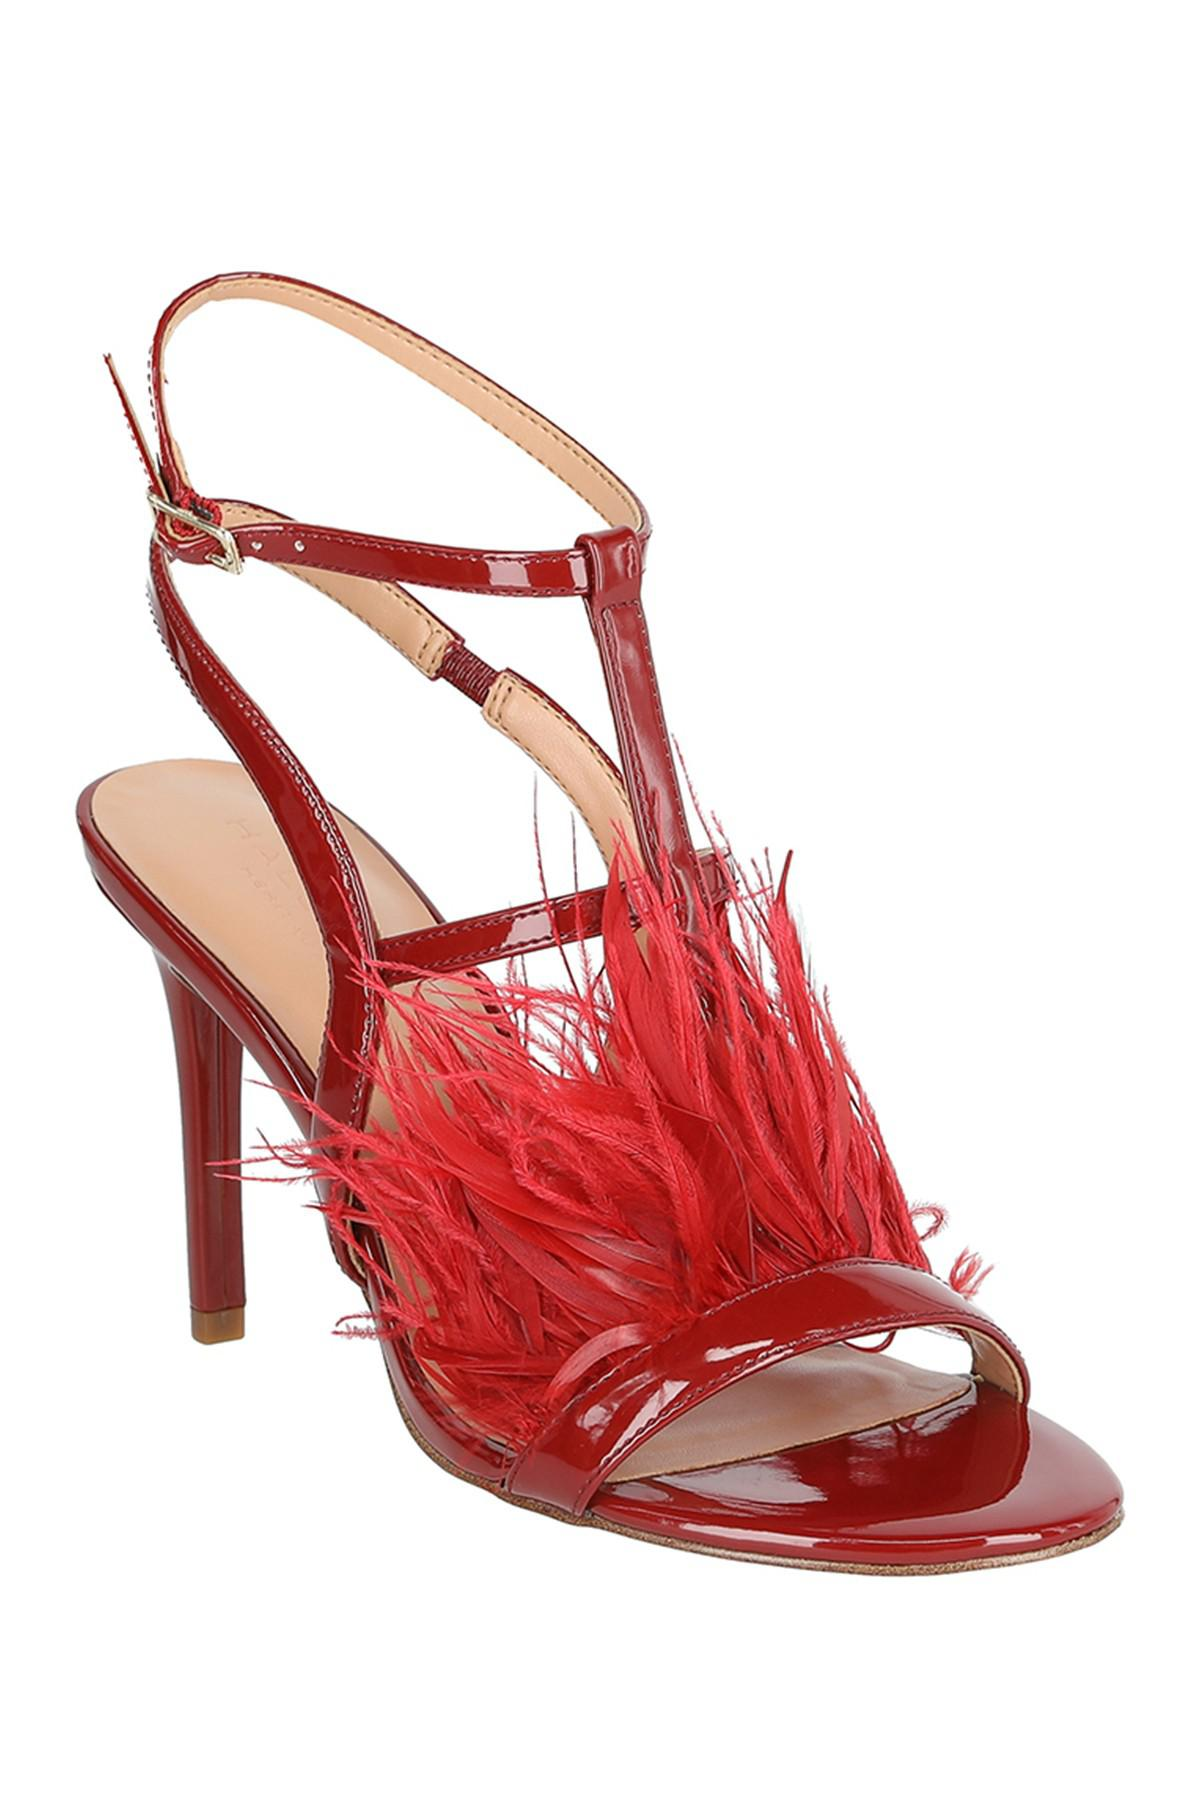 0d037ae38914d Halston Tasha Faux Feather Patent Heel in Red - Lyst